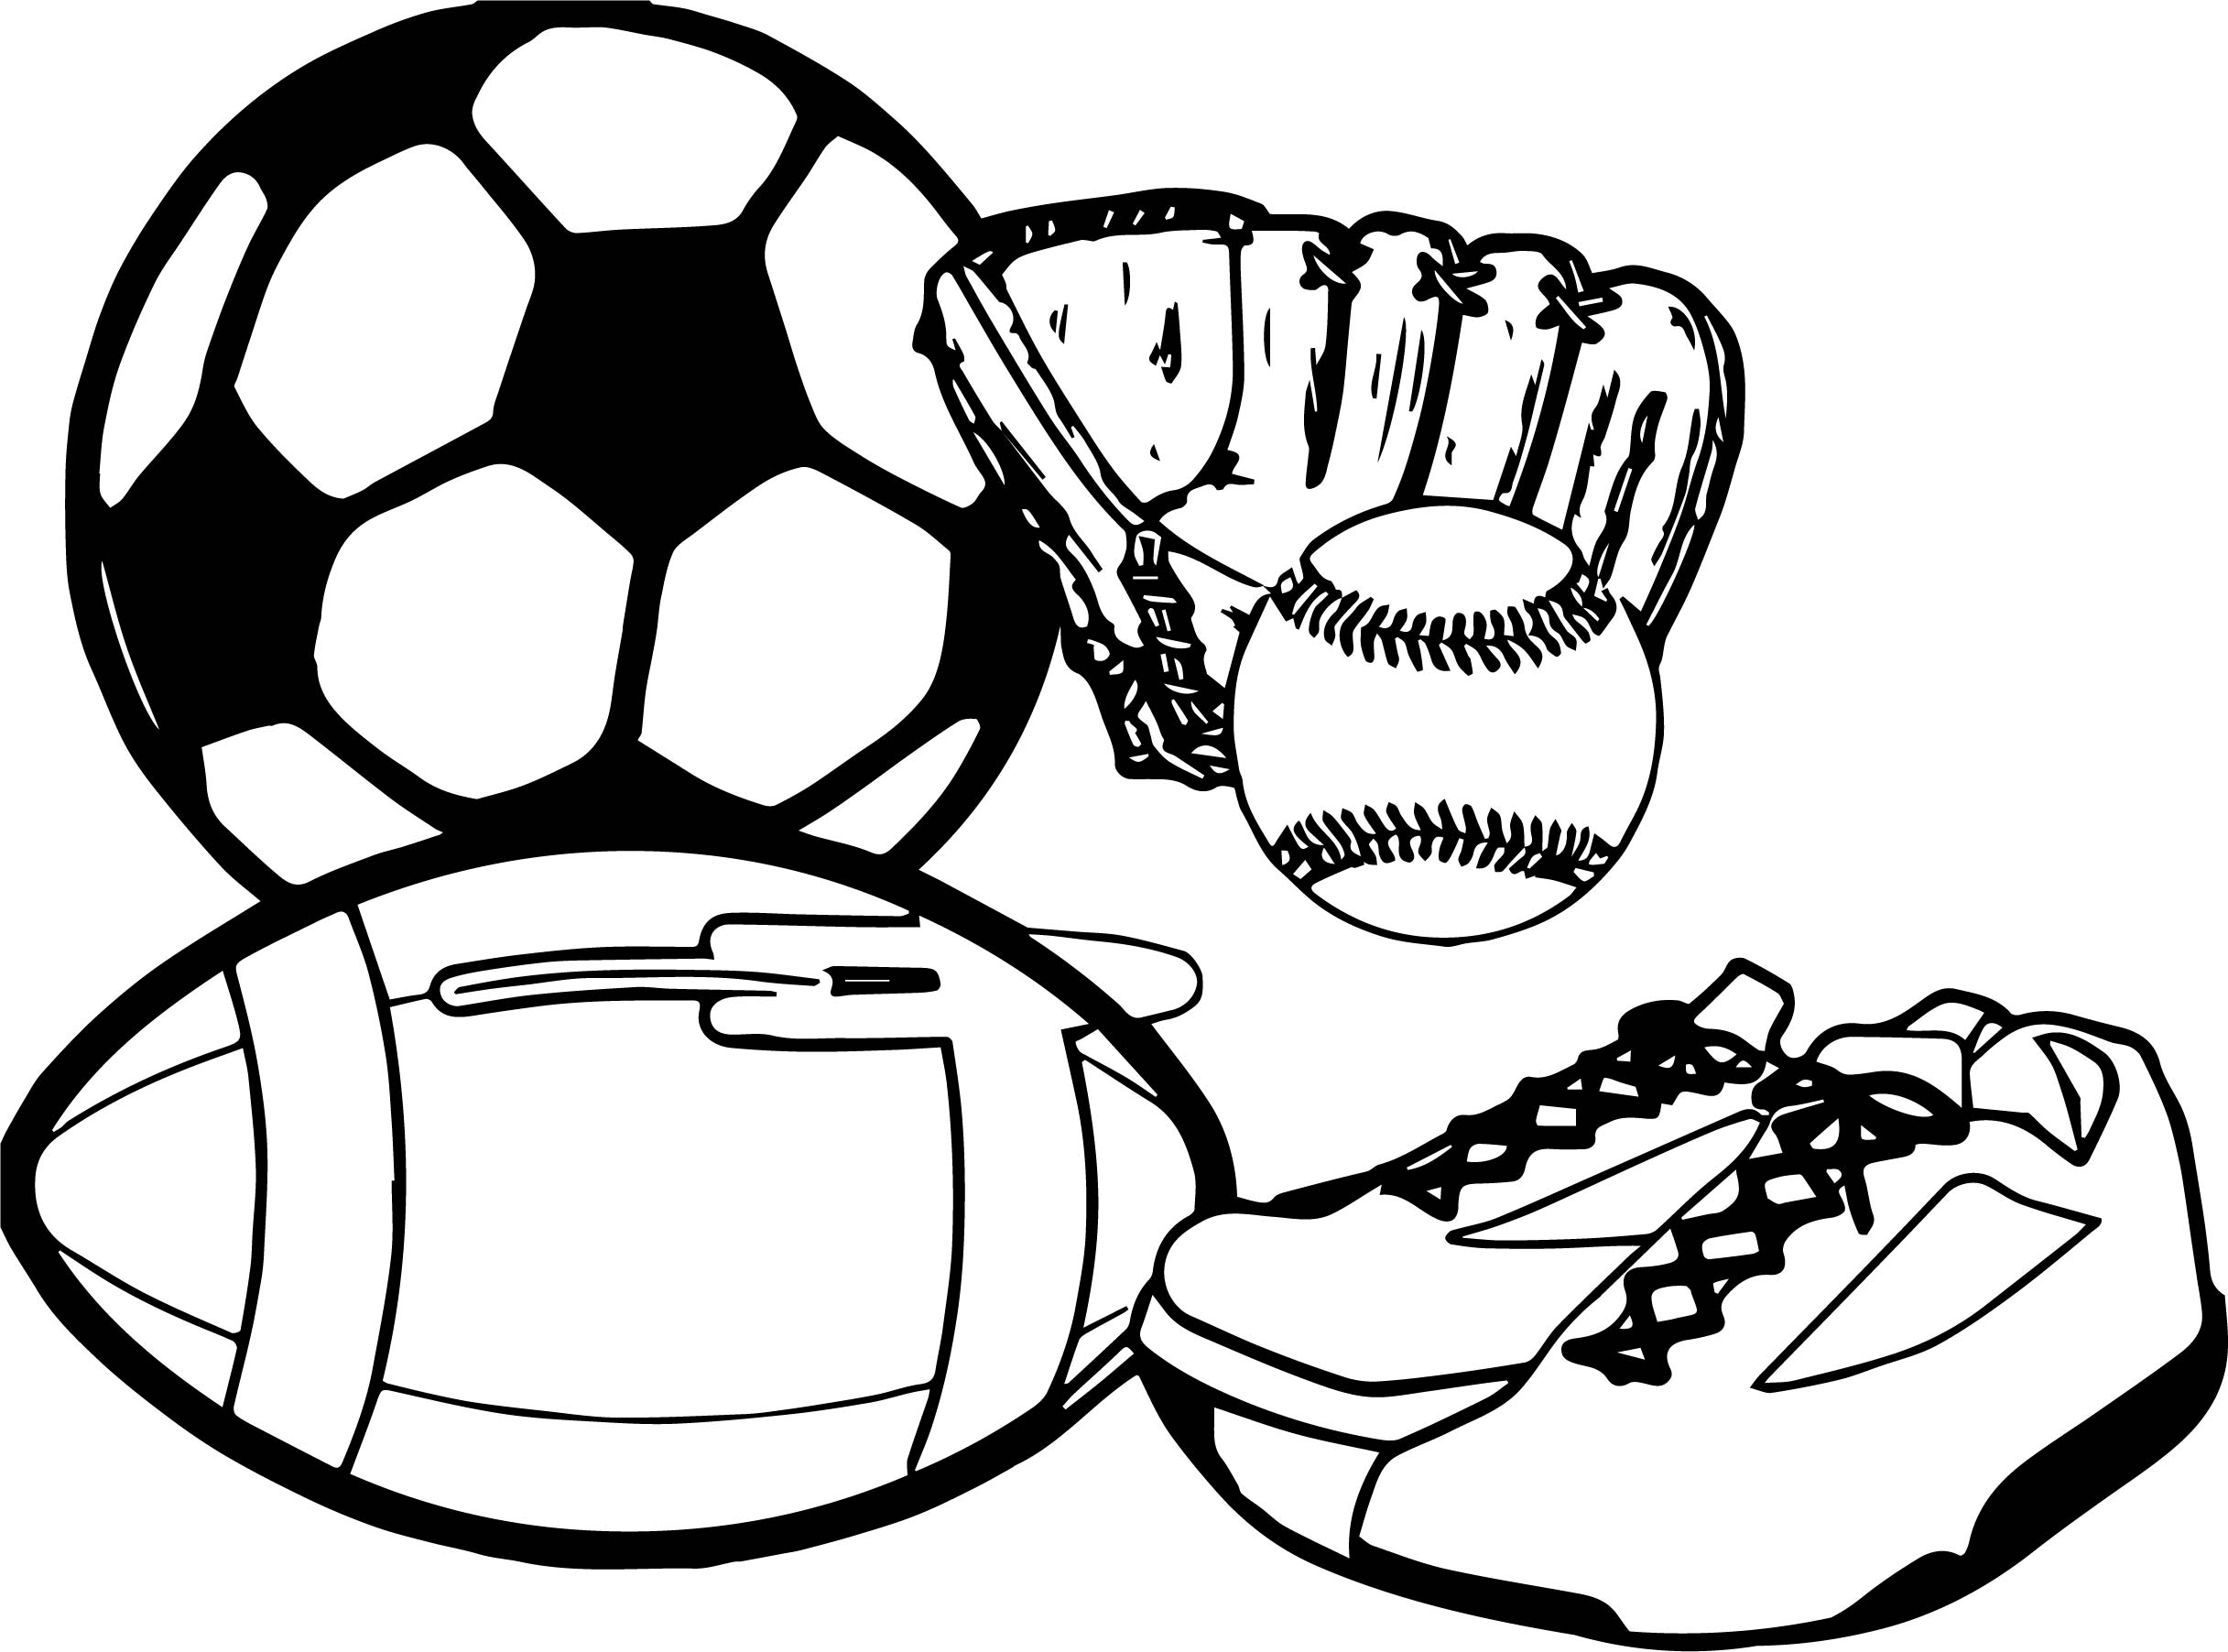 Coloring Pages Sports : Sports coloring pages page